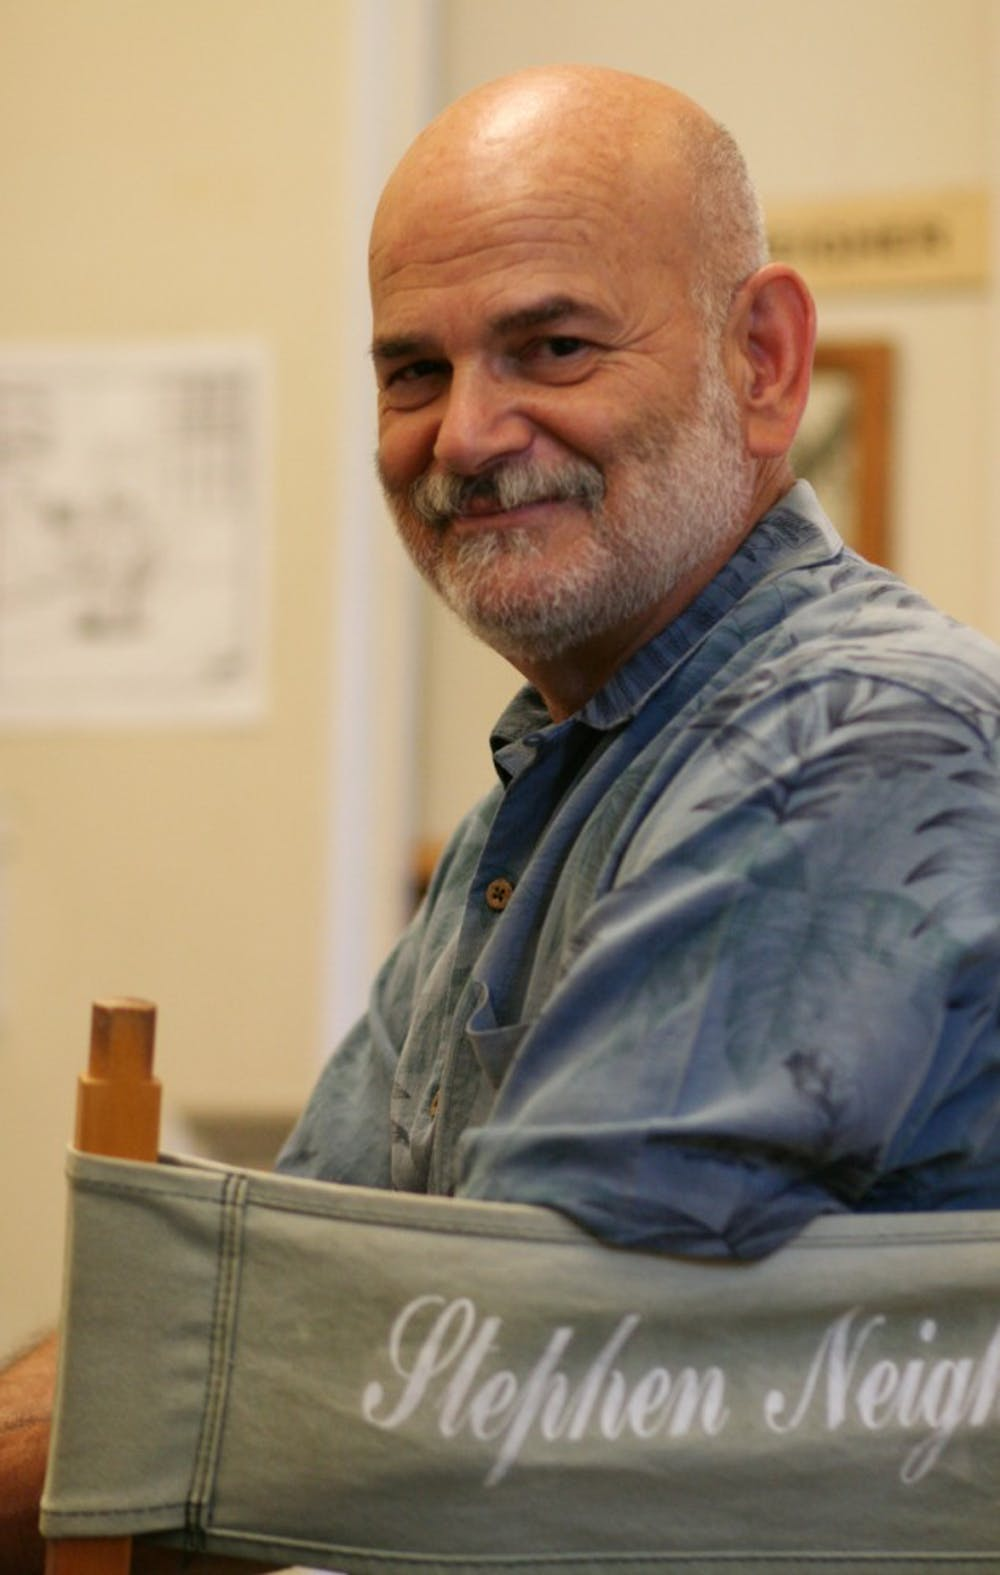 Professor Stephen Neigher has taught screenwriting classes for the past seven years at UNC.  Above, he sits in is his director's chair, one of many mementos he keeps in his office at UNC to remember his time working in Hollywod in the TV and film industries.